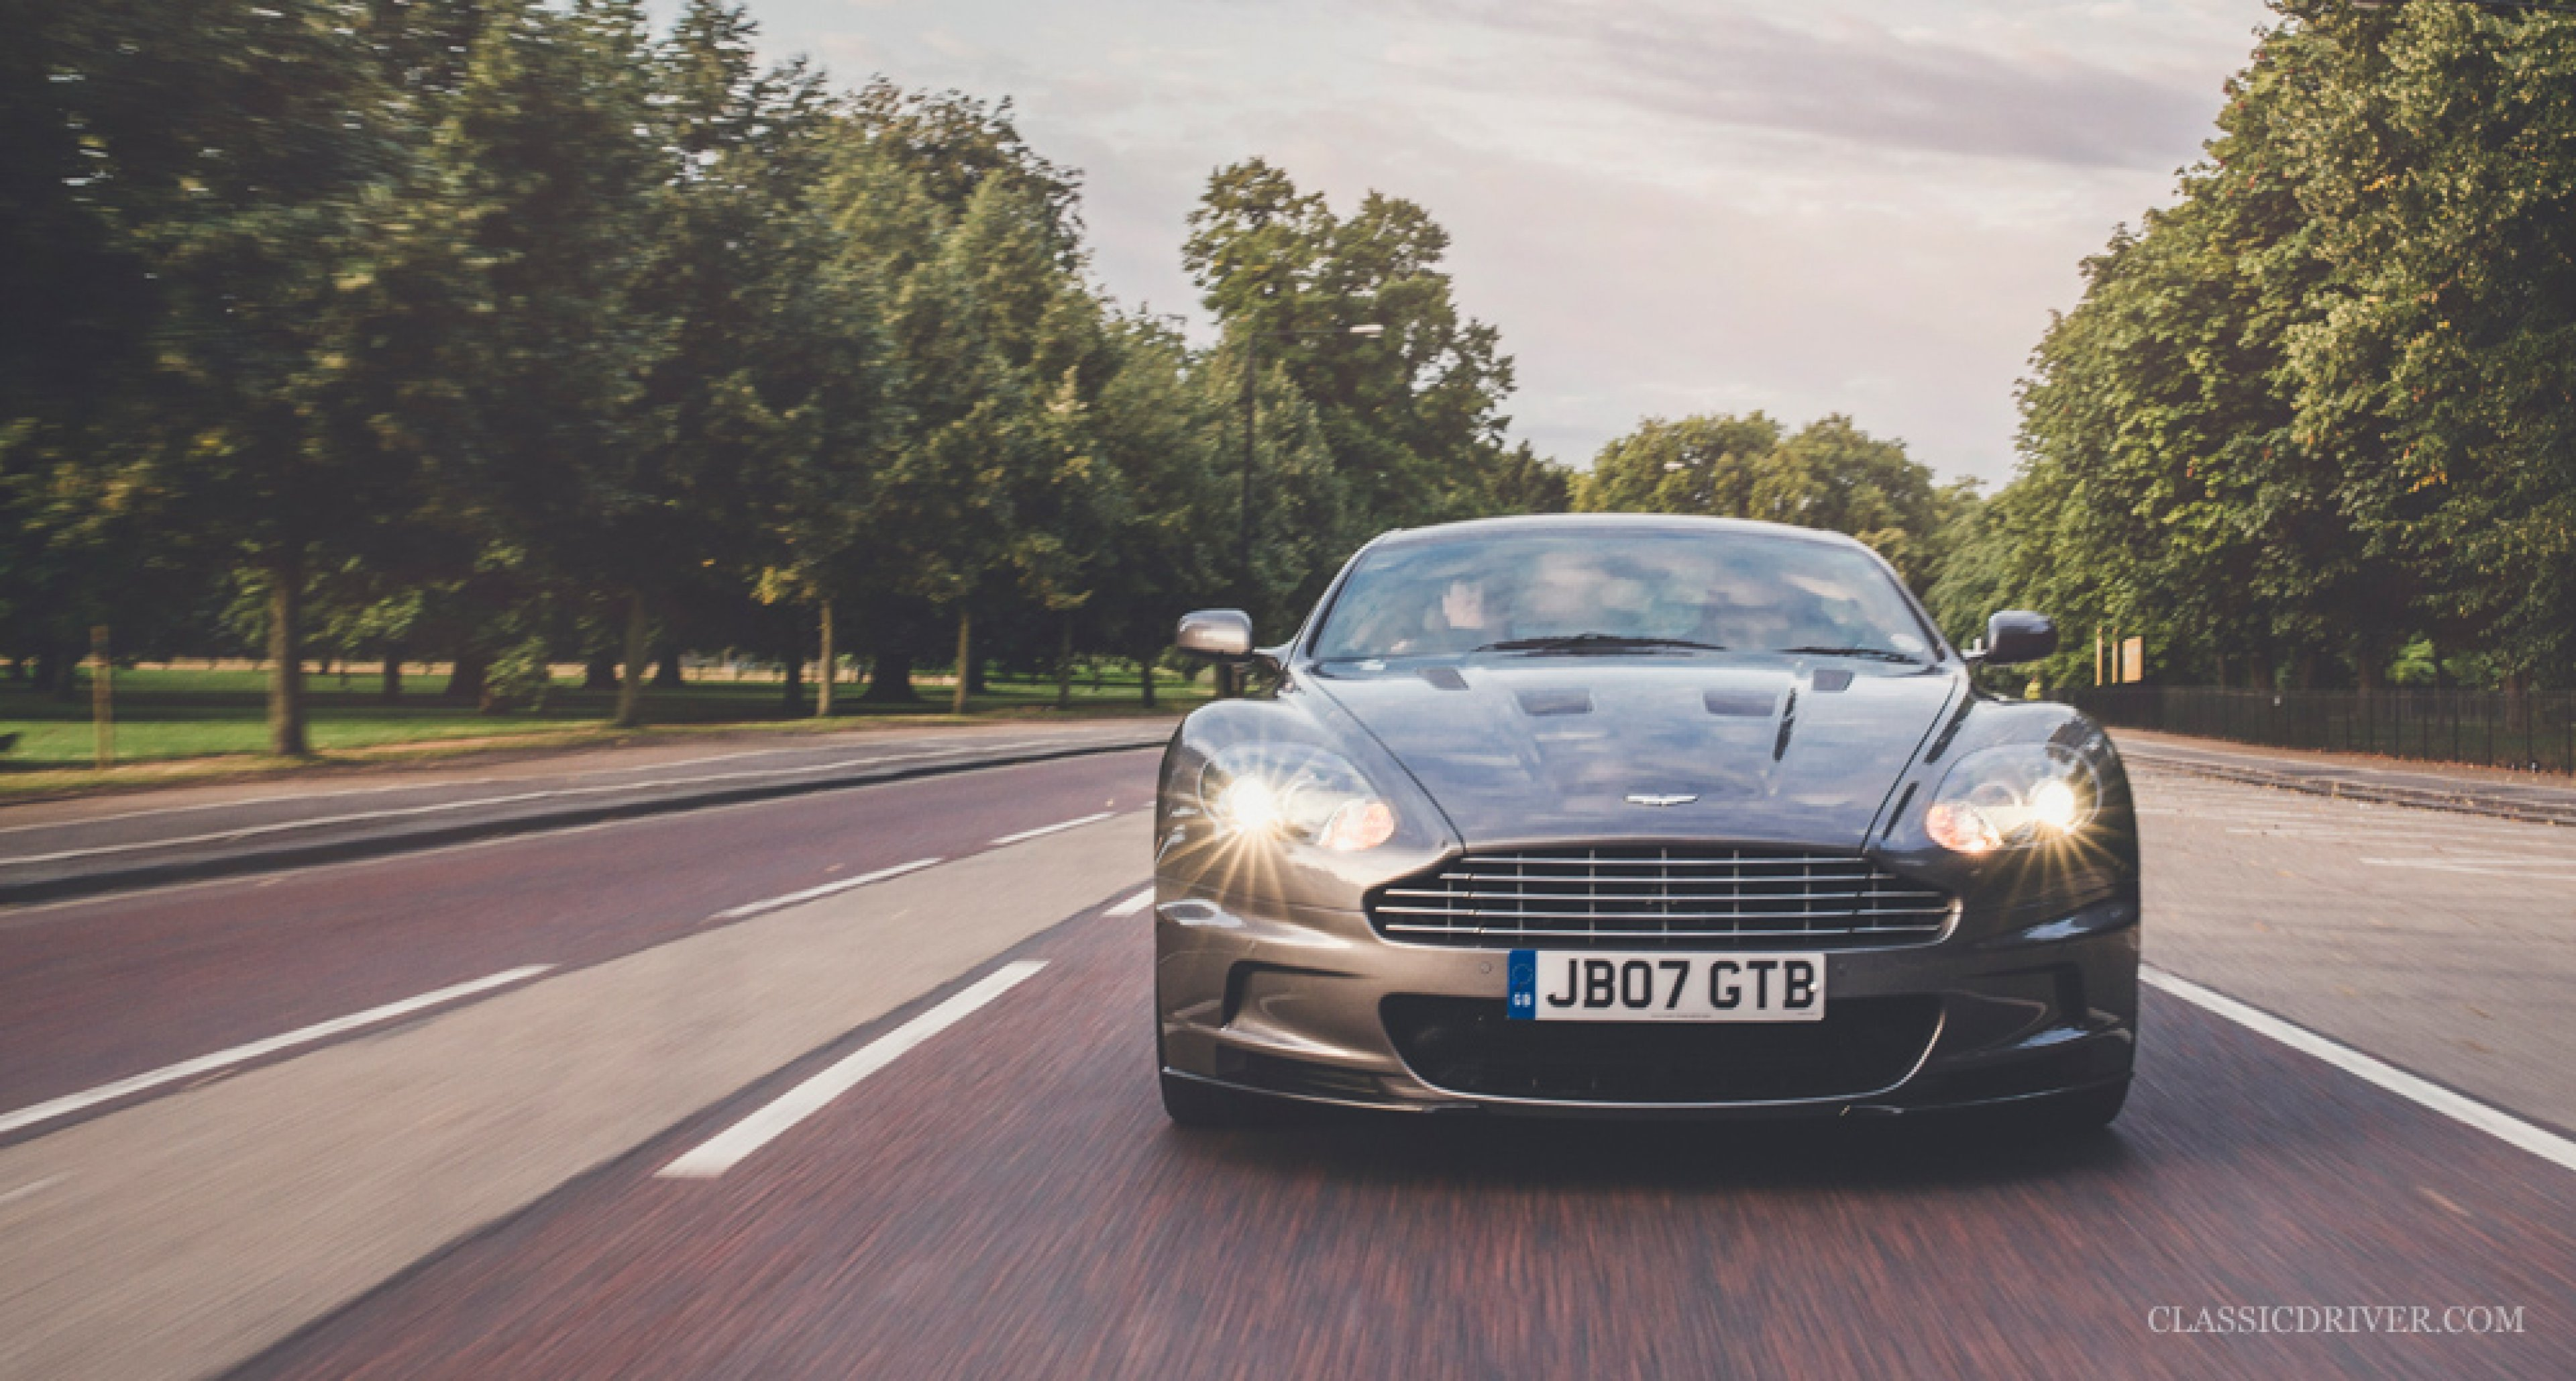 Brotherly Bond Why I Bought The Casino Royale Aston Martin Dbs Classic Driver Magazine